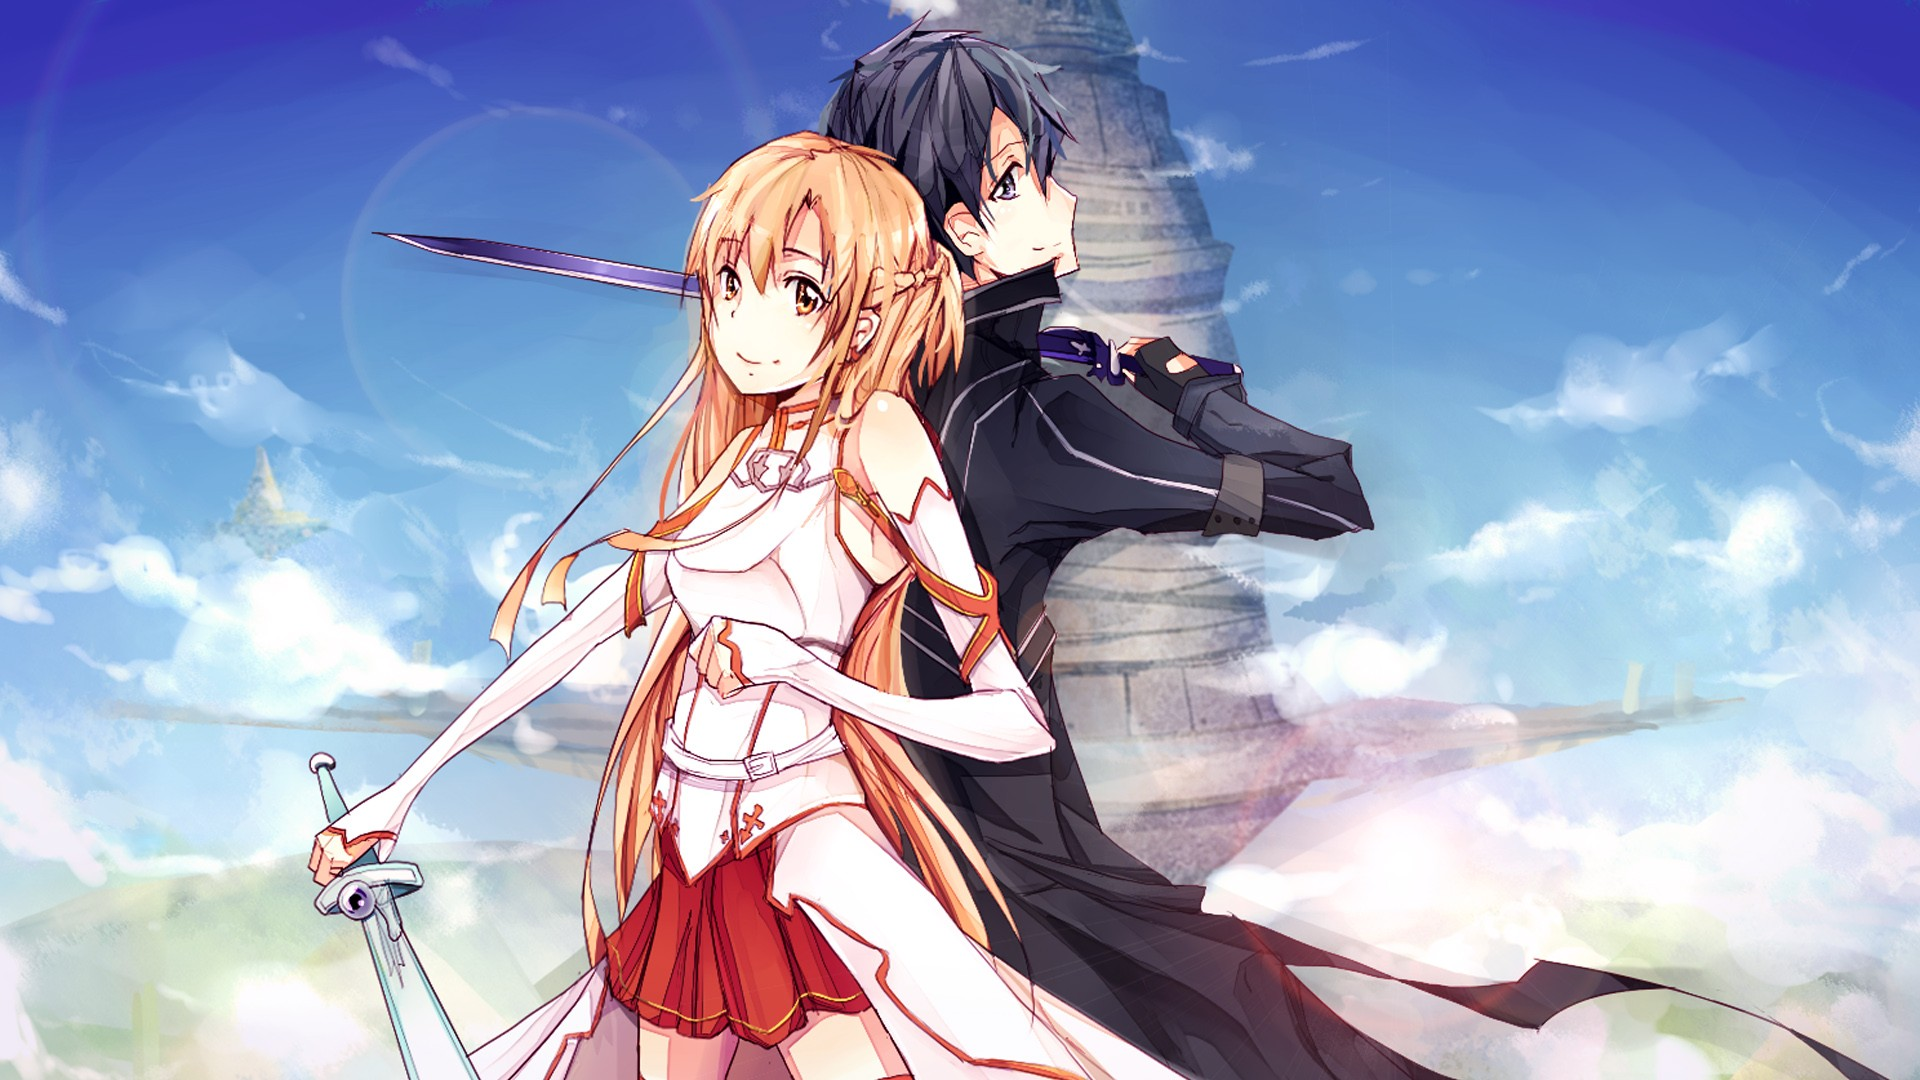 sword art online In the near future, a virtual reality massive multiplayer online role-playing game (vrmmorpg) called sword art online has been released where players control their avatars with their bodies using a piece of technology called: nerve gear.